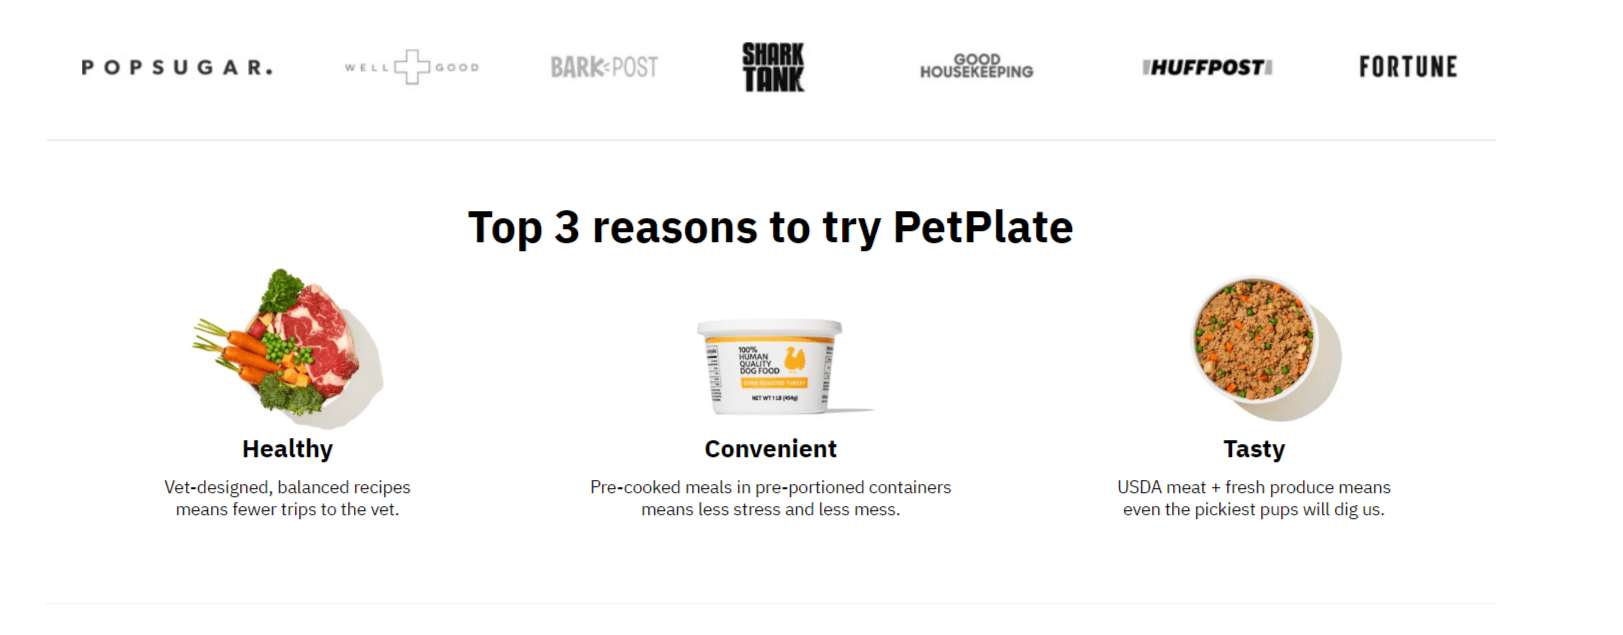 PetPlate Coupon Codes- Reasons To Try PetPlate